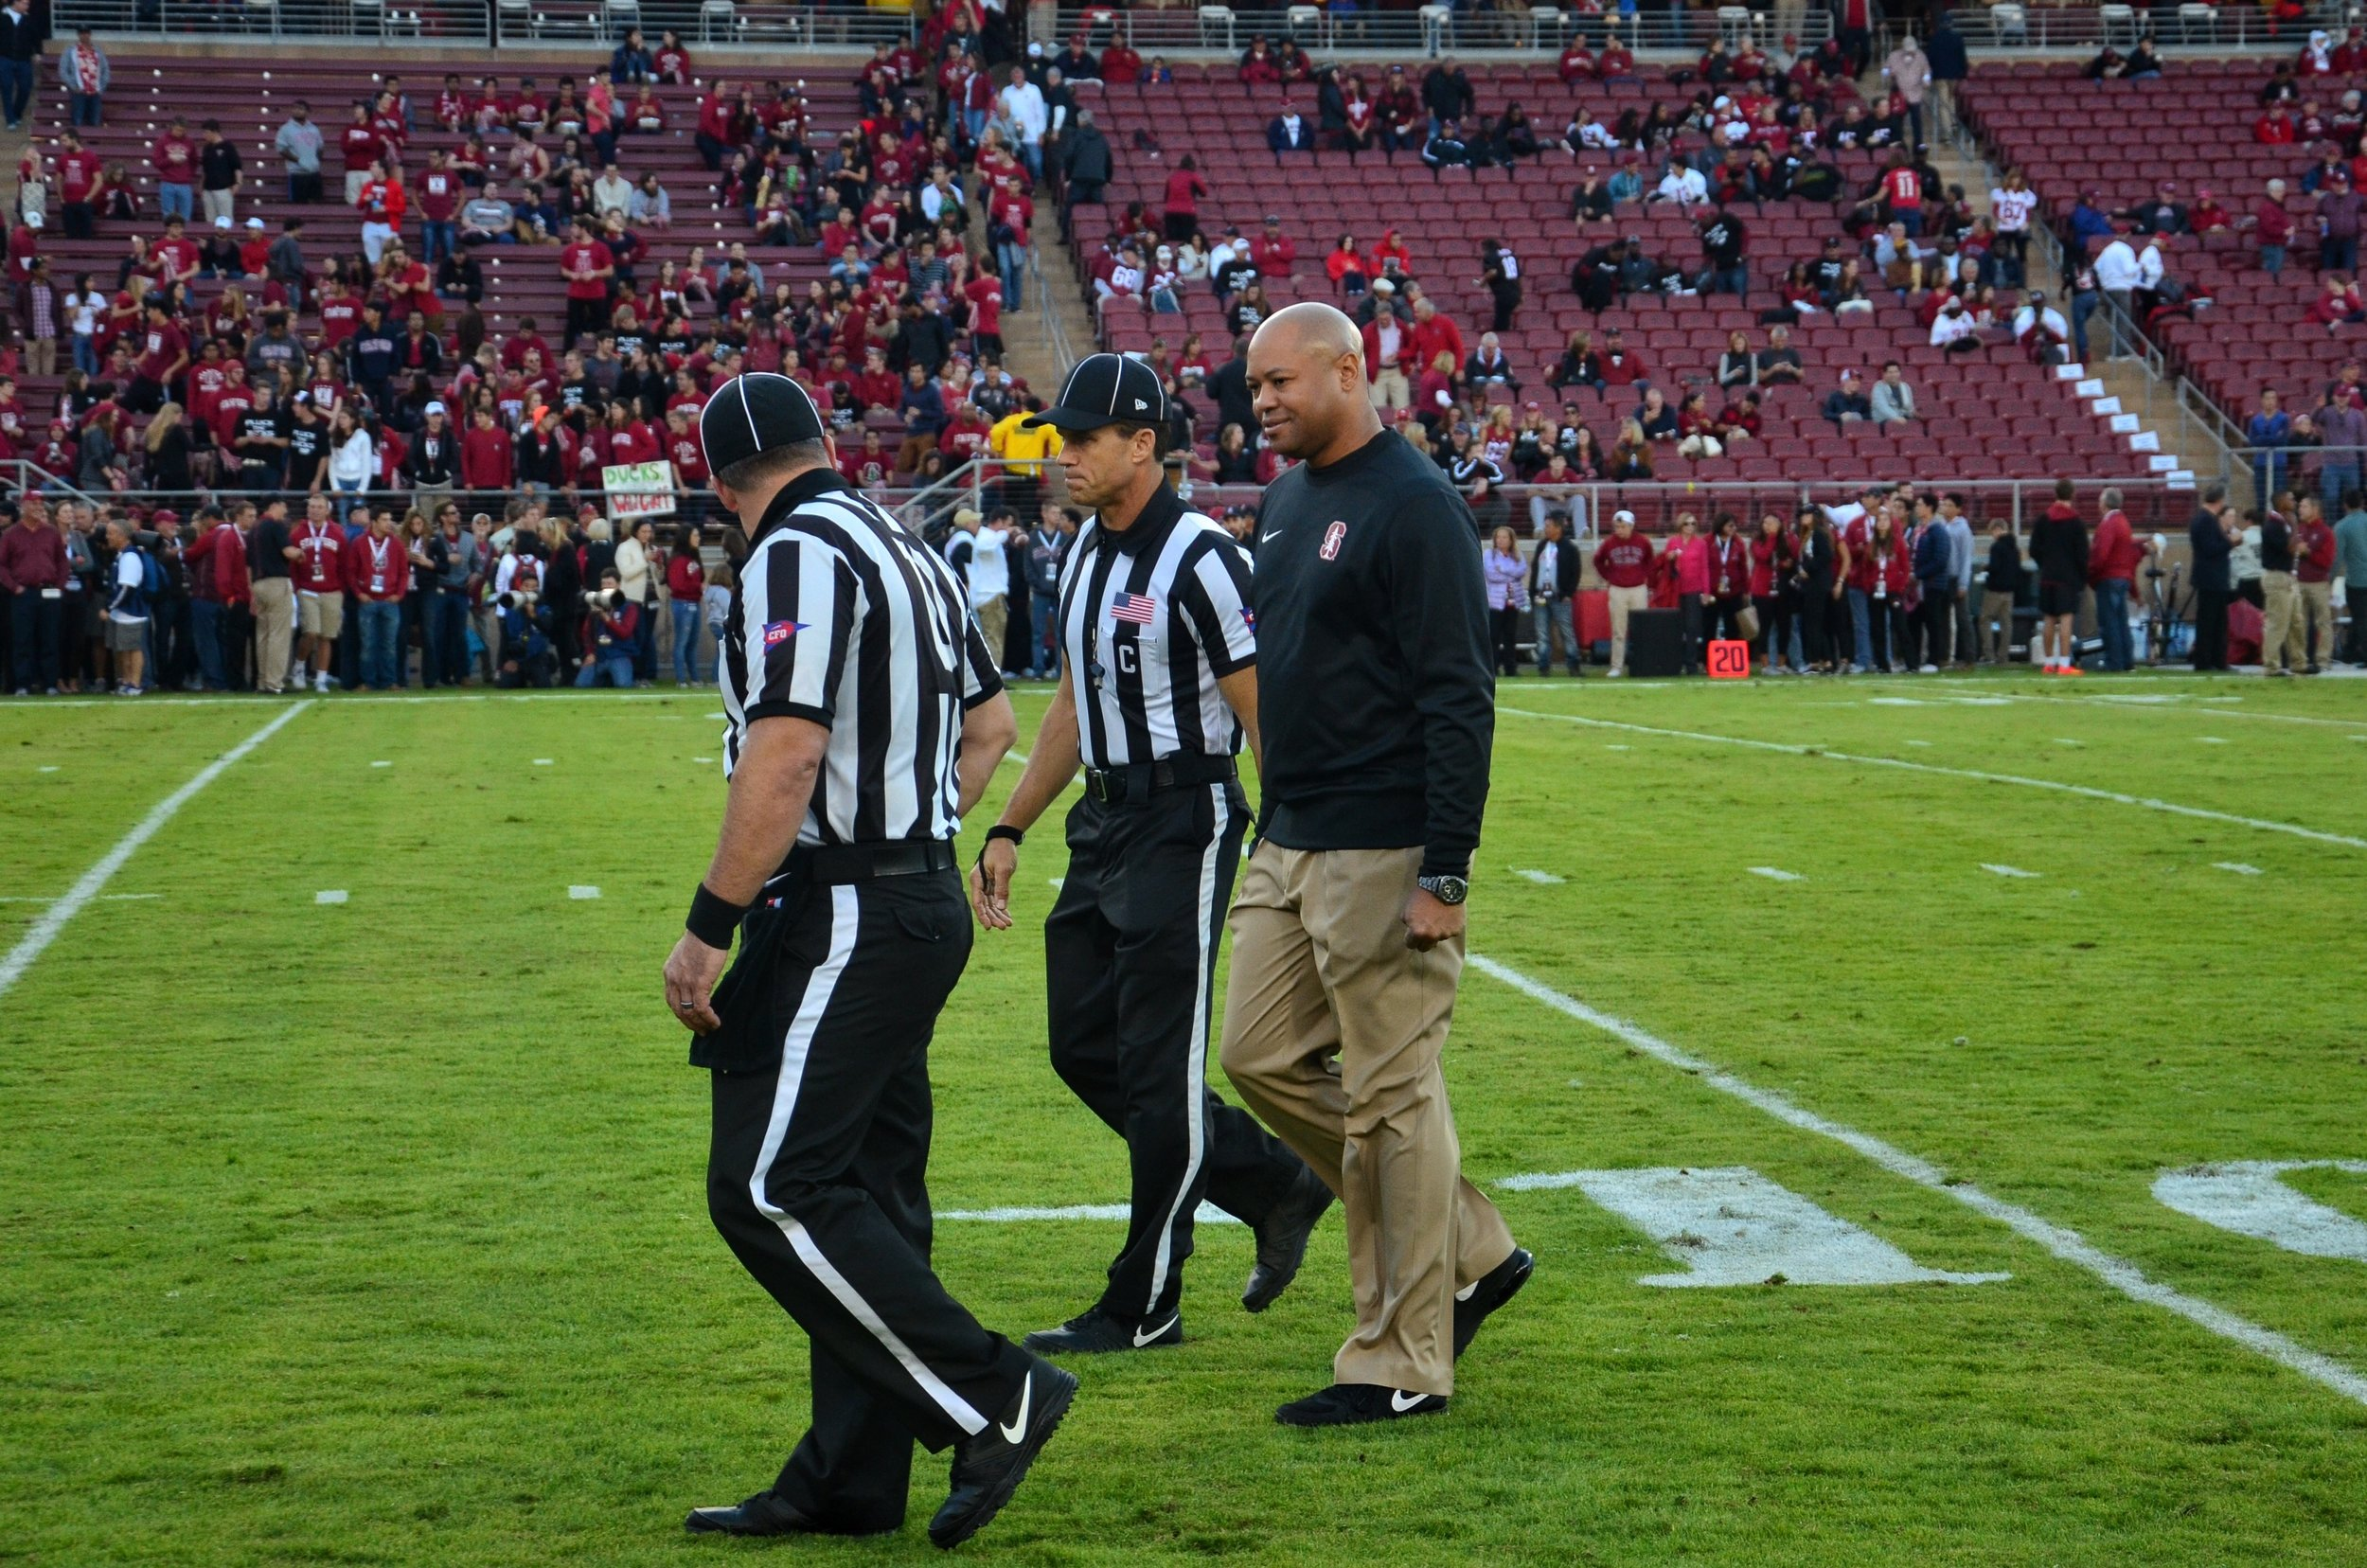 Stanford head coach David Shaw talks to the officials prior to the game.